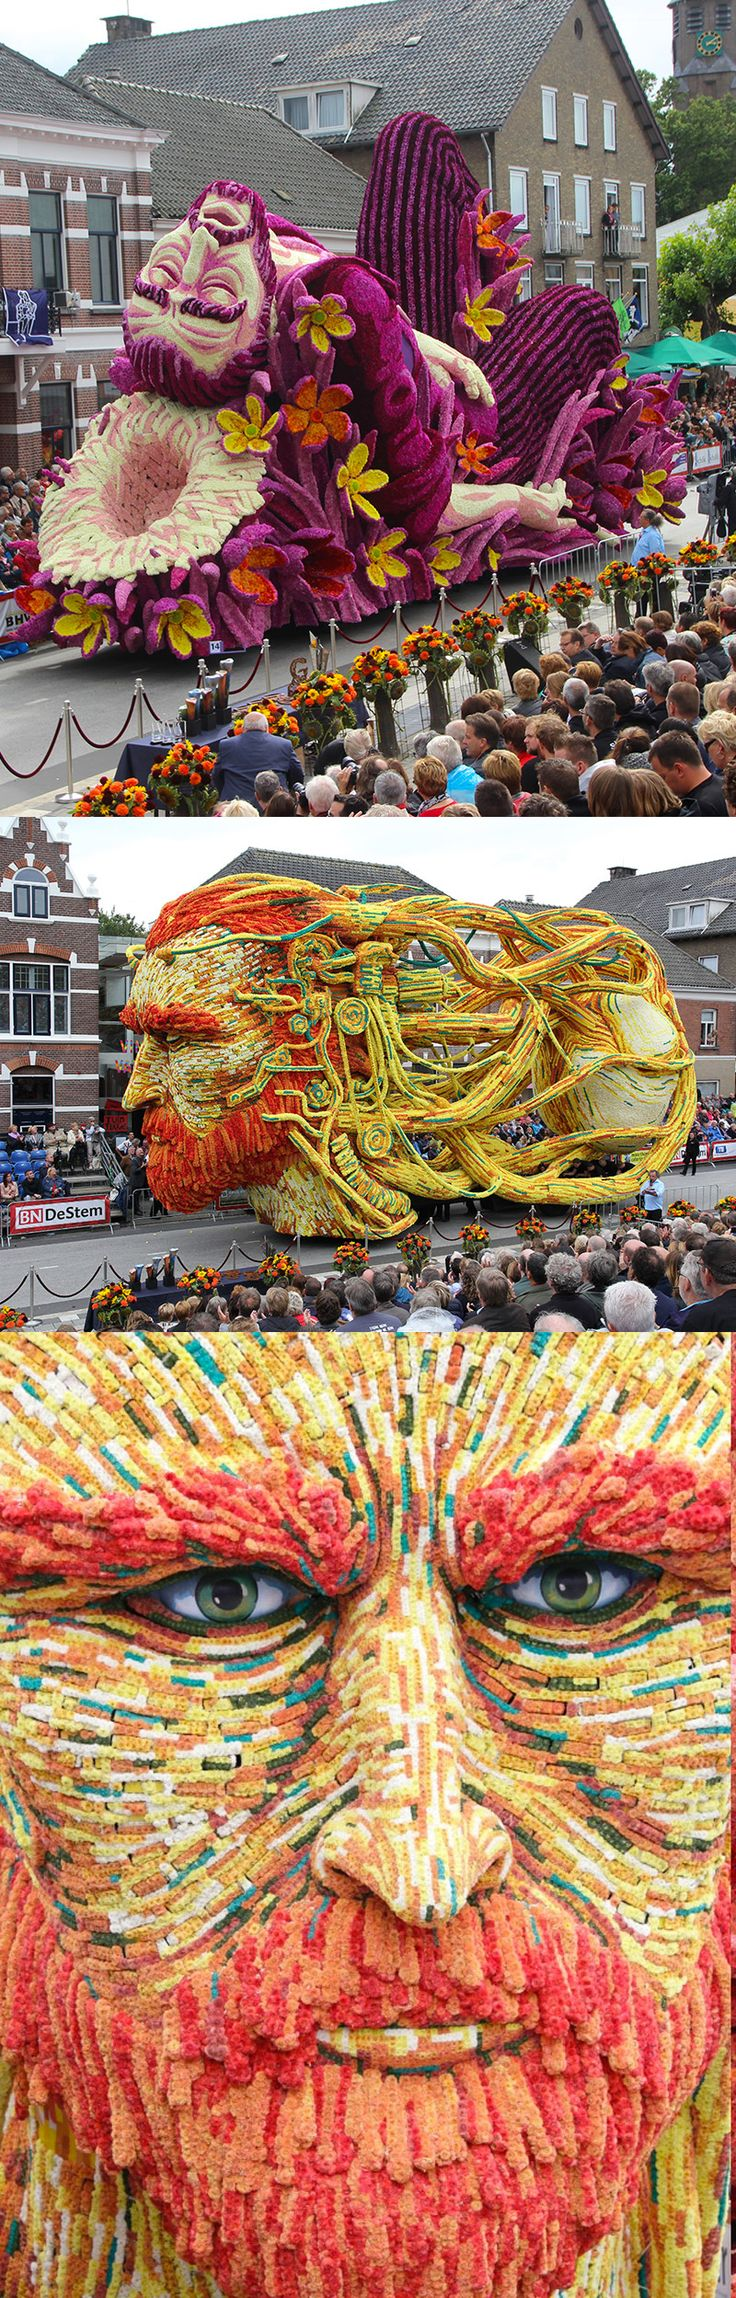 The Annual 'Corso Zundert' Parade Honors Van Gogh with Monumental Floats Adorned with Flowers